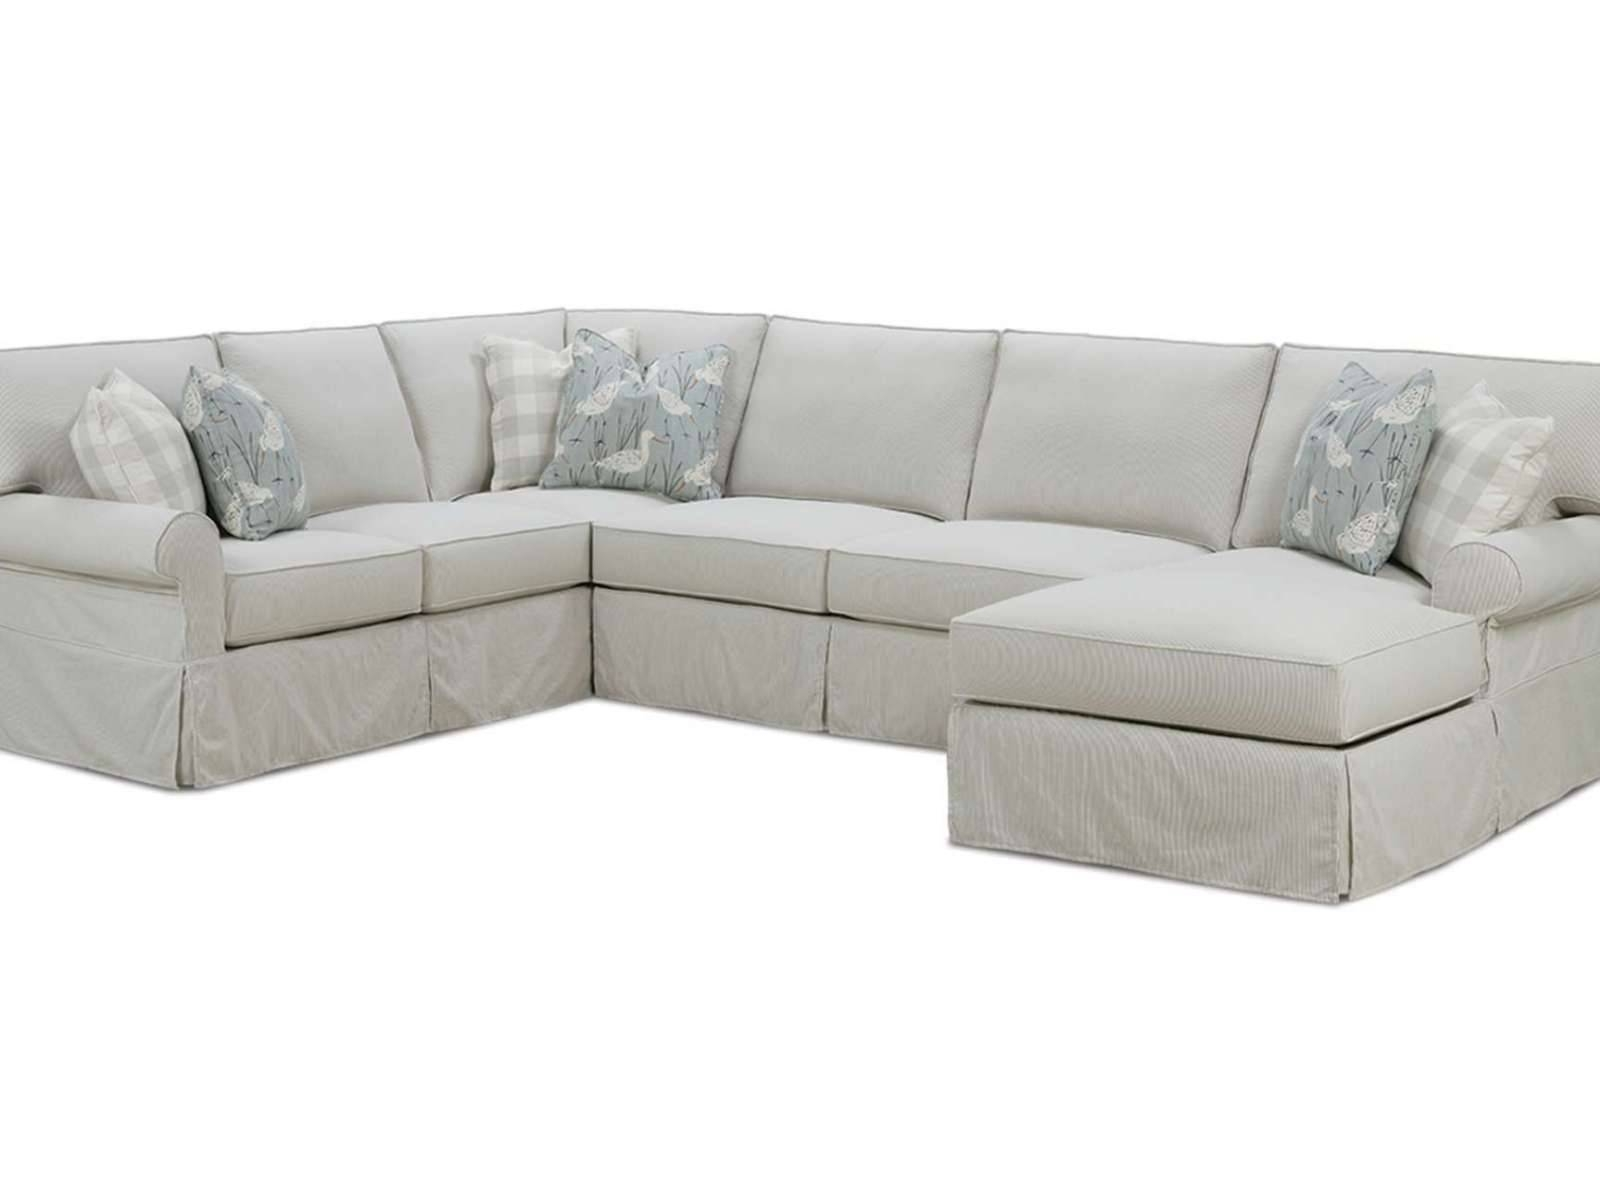 Diy Slipcovers For Sectional Sofas With Chaise